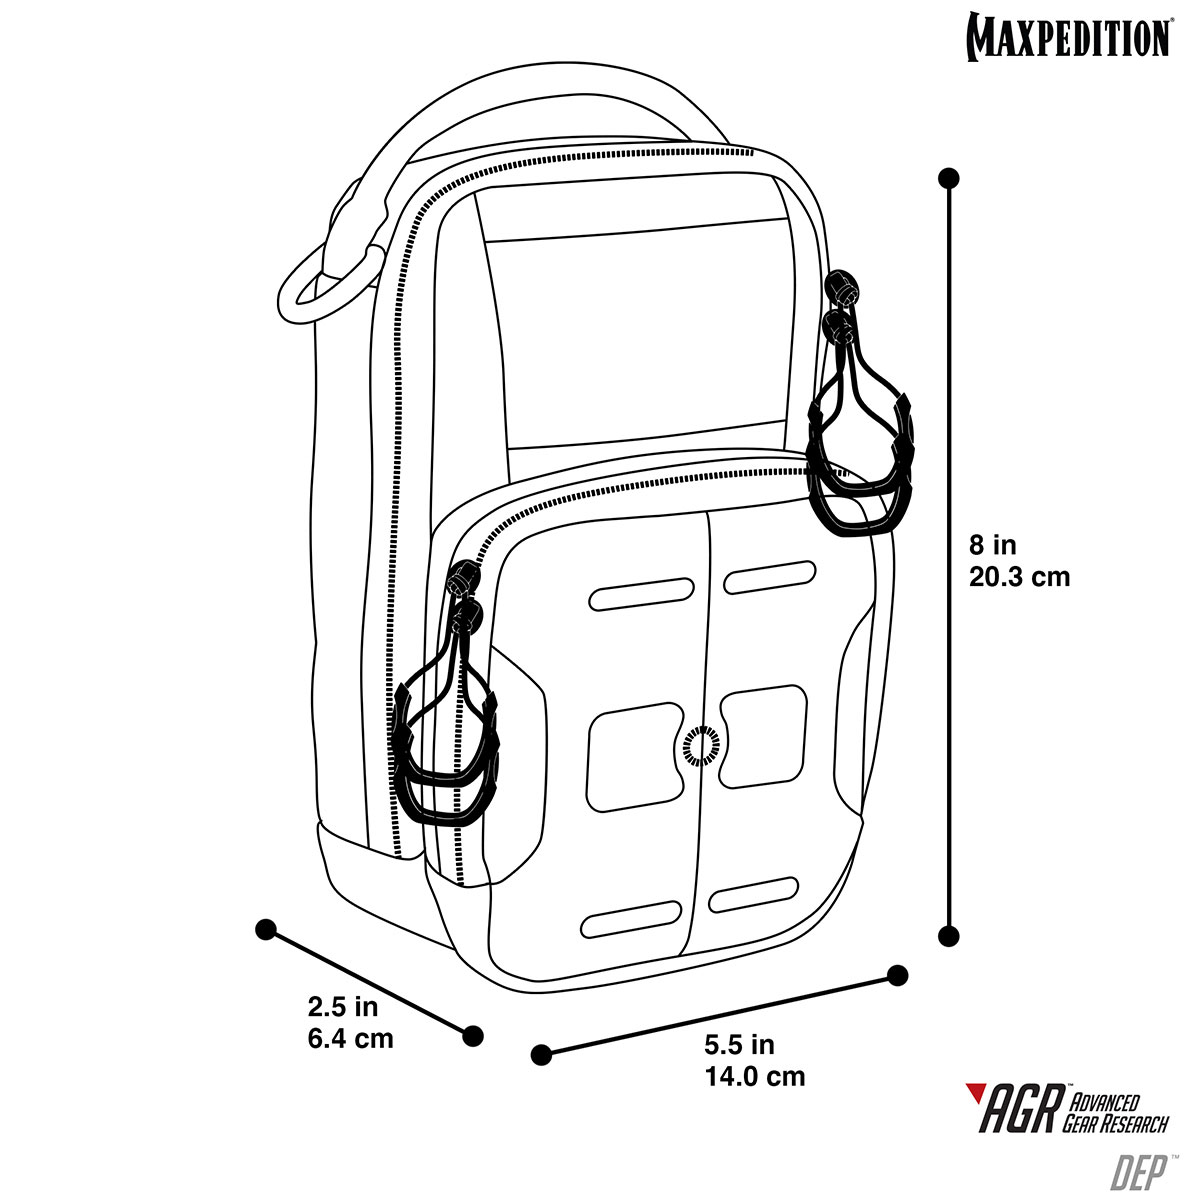 Maxpedition DEP™ Daily Essentials Pouch Black